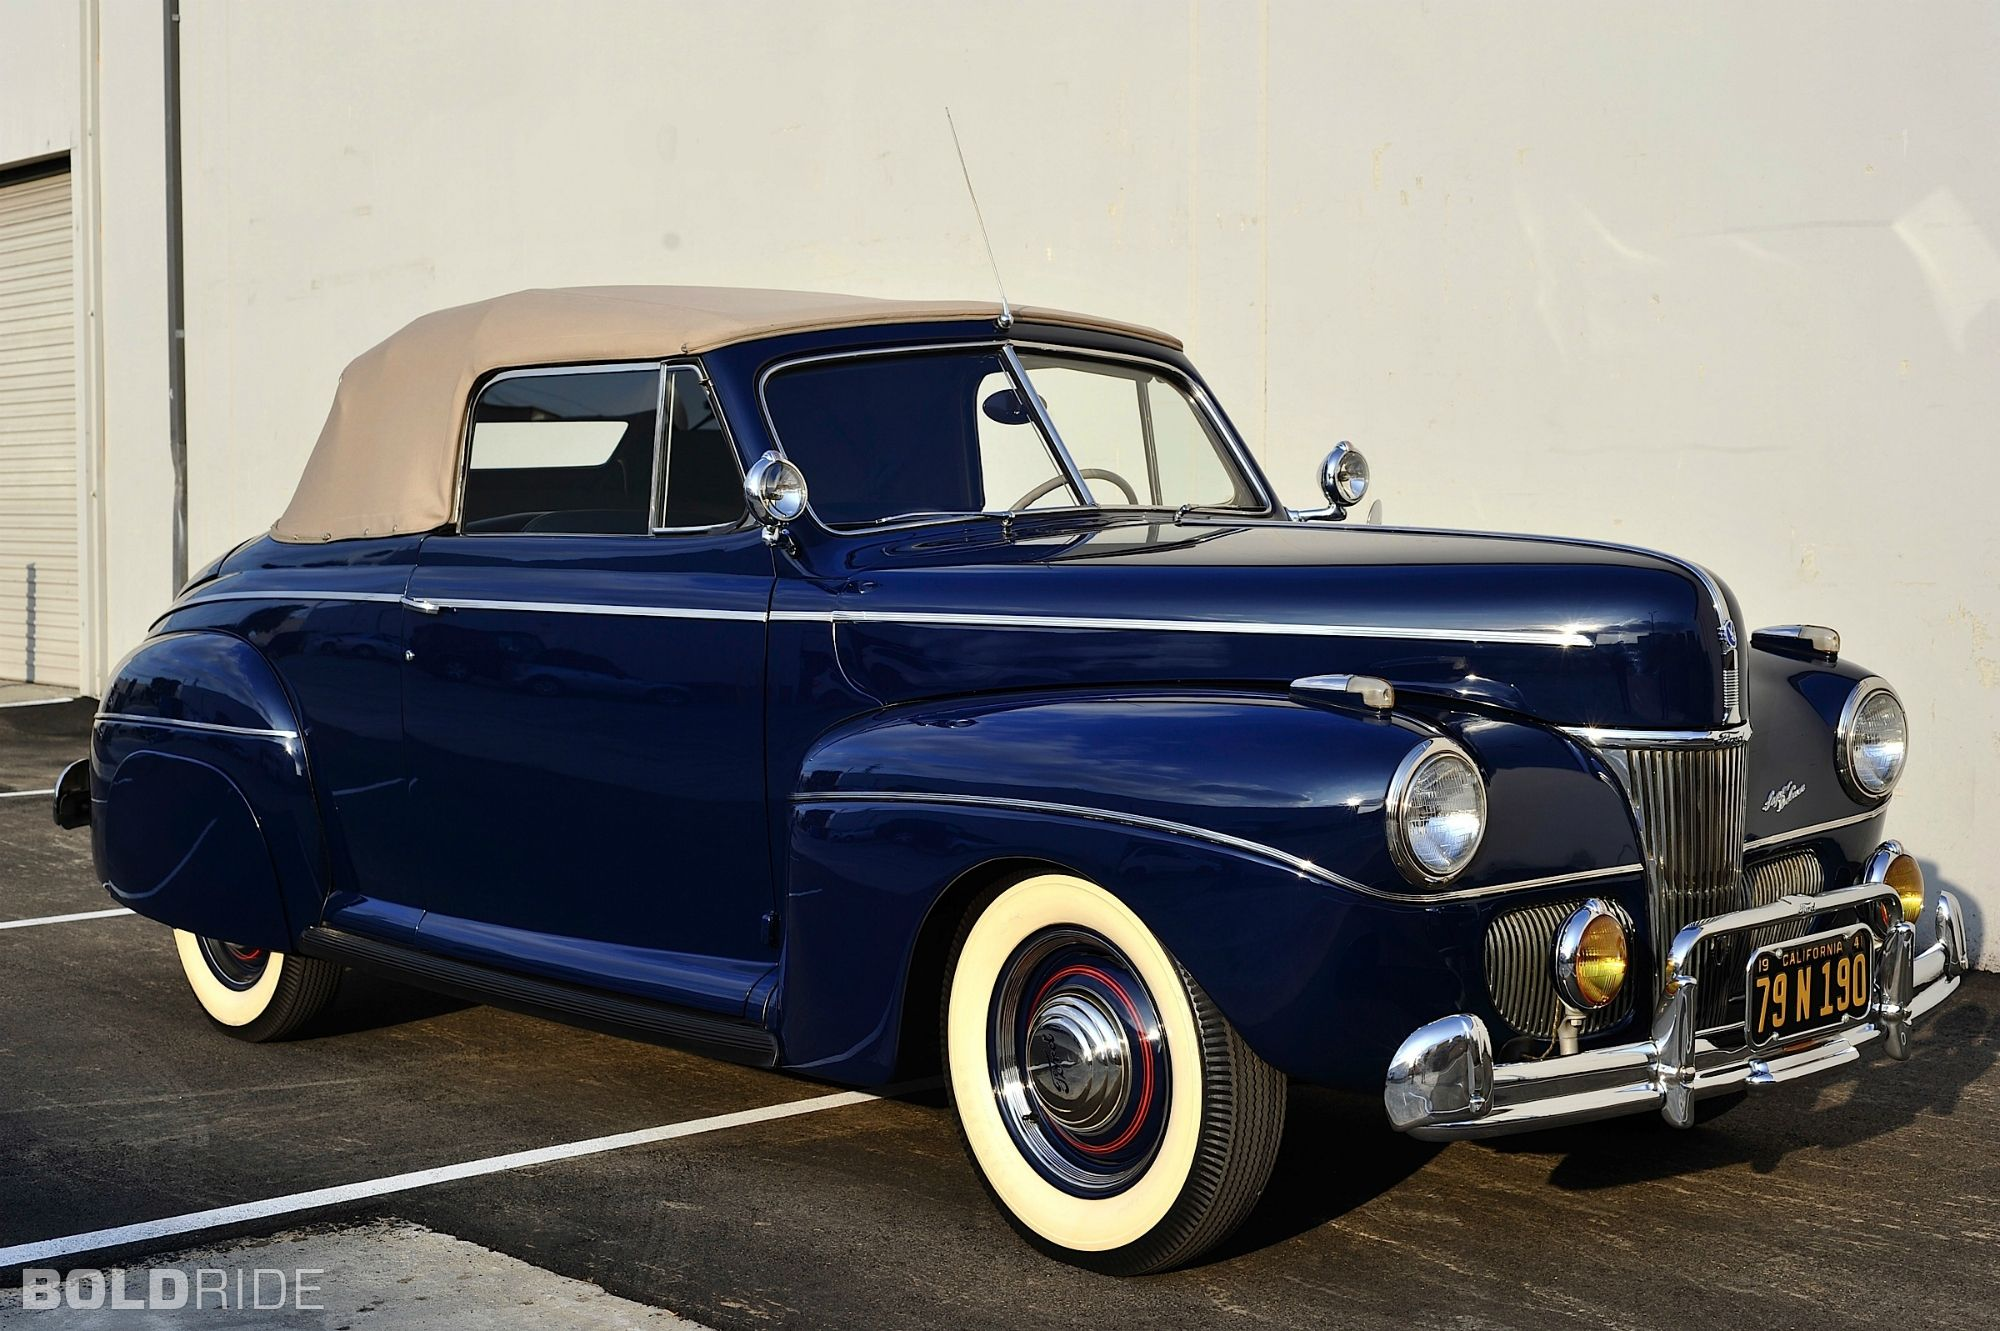 1941 ford super deluxe convertible coupe love the shade of blue